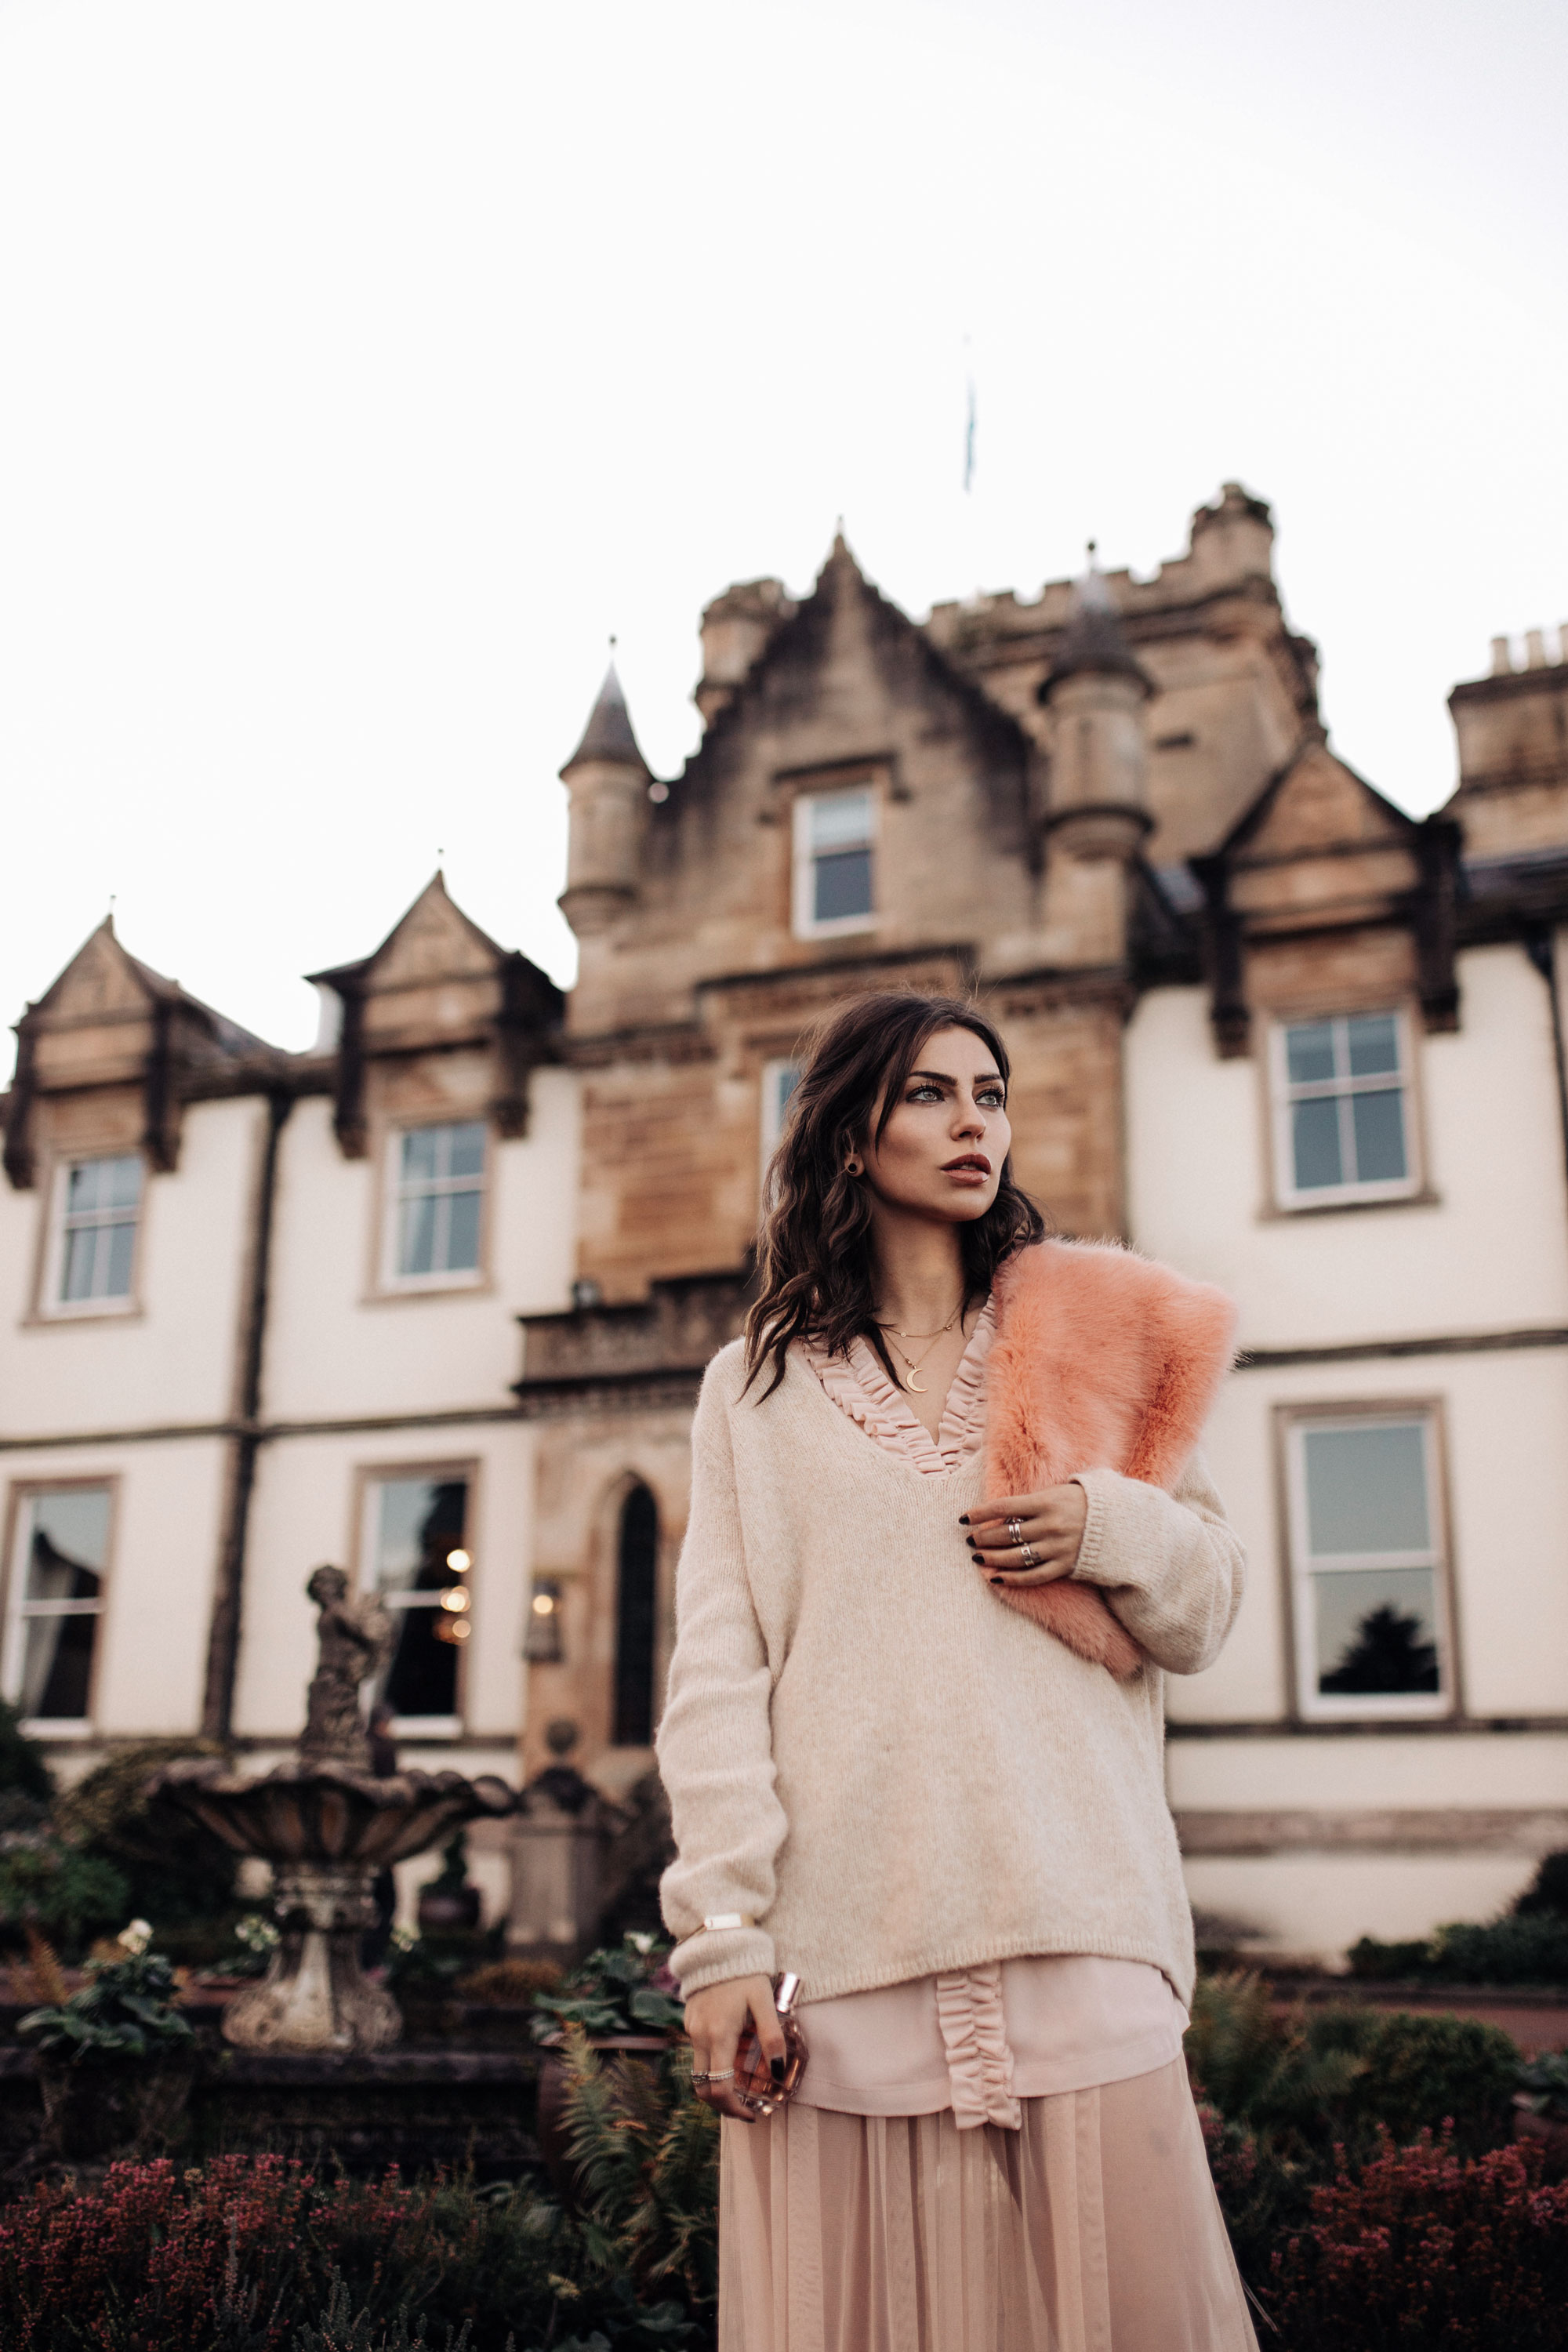 Flowerbomb | Viktor & Rolf | Blogger Fashion Editorial | Fragrance | Cameron House Hotel | Scotland